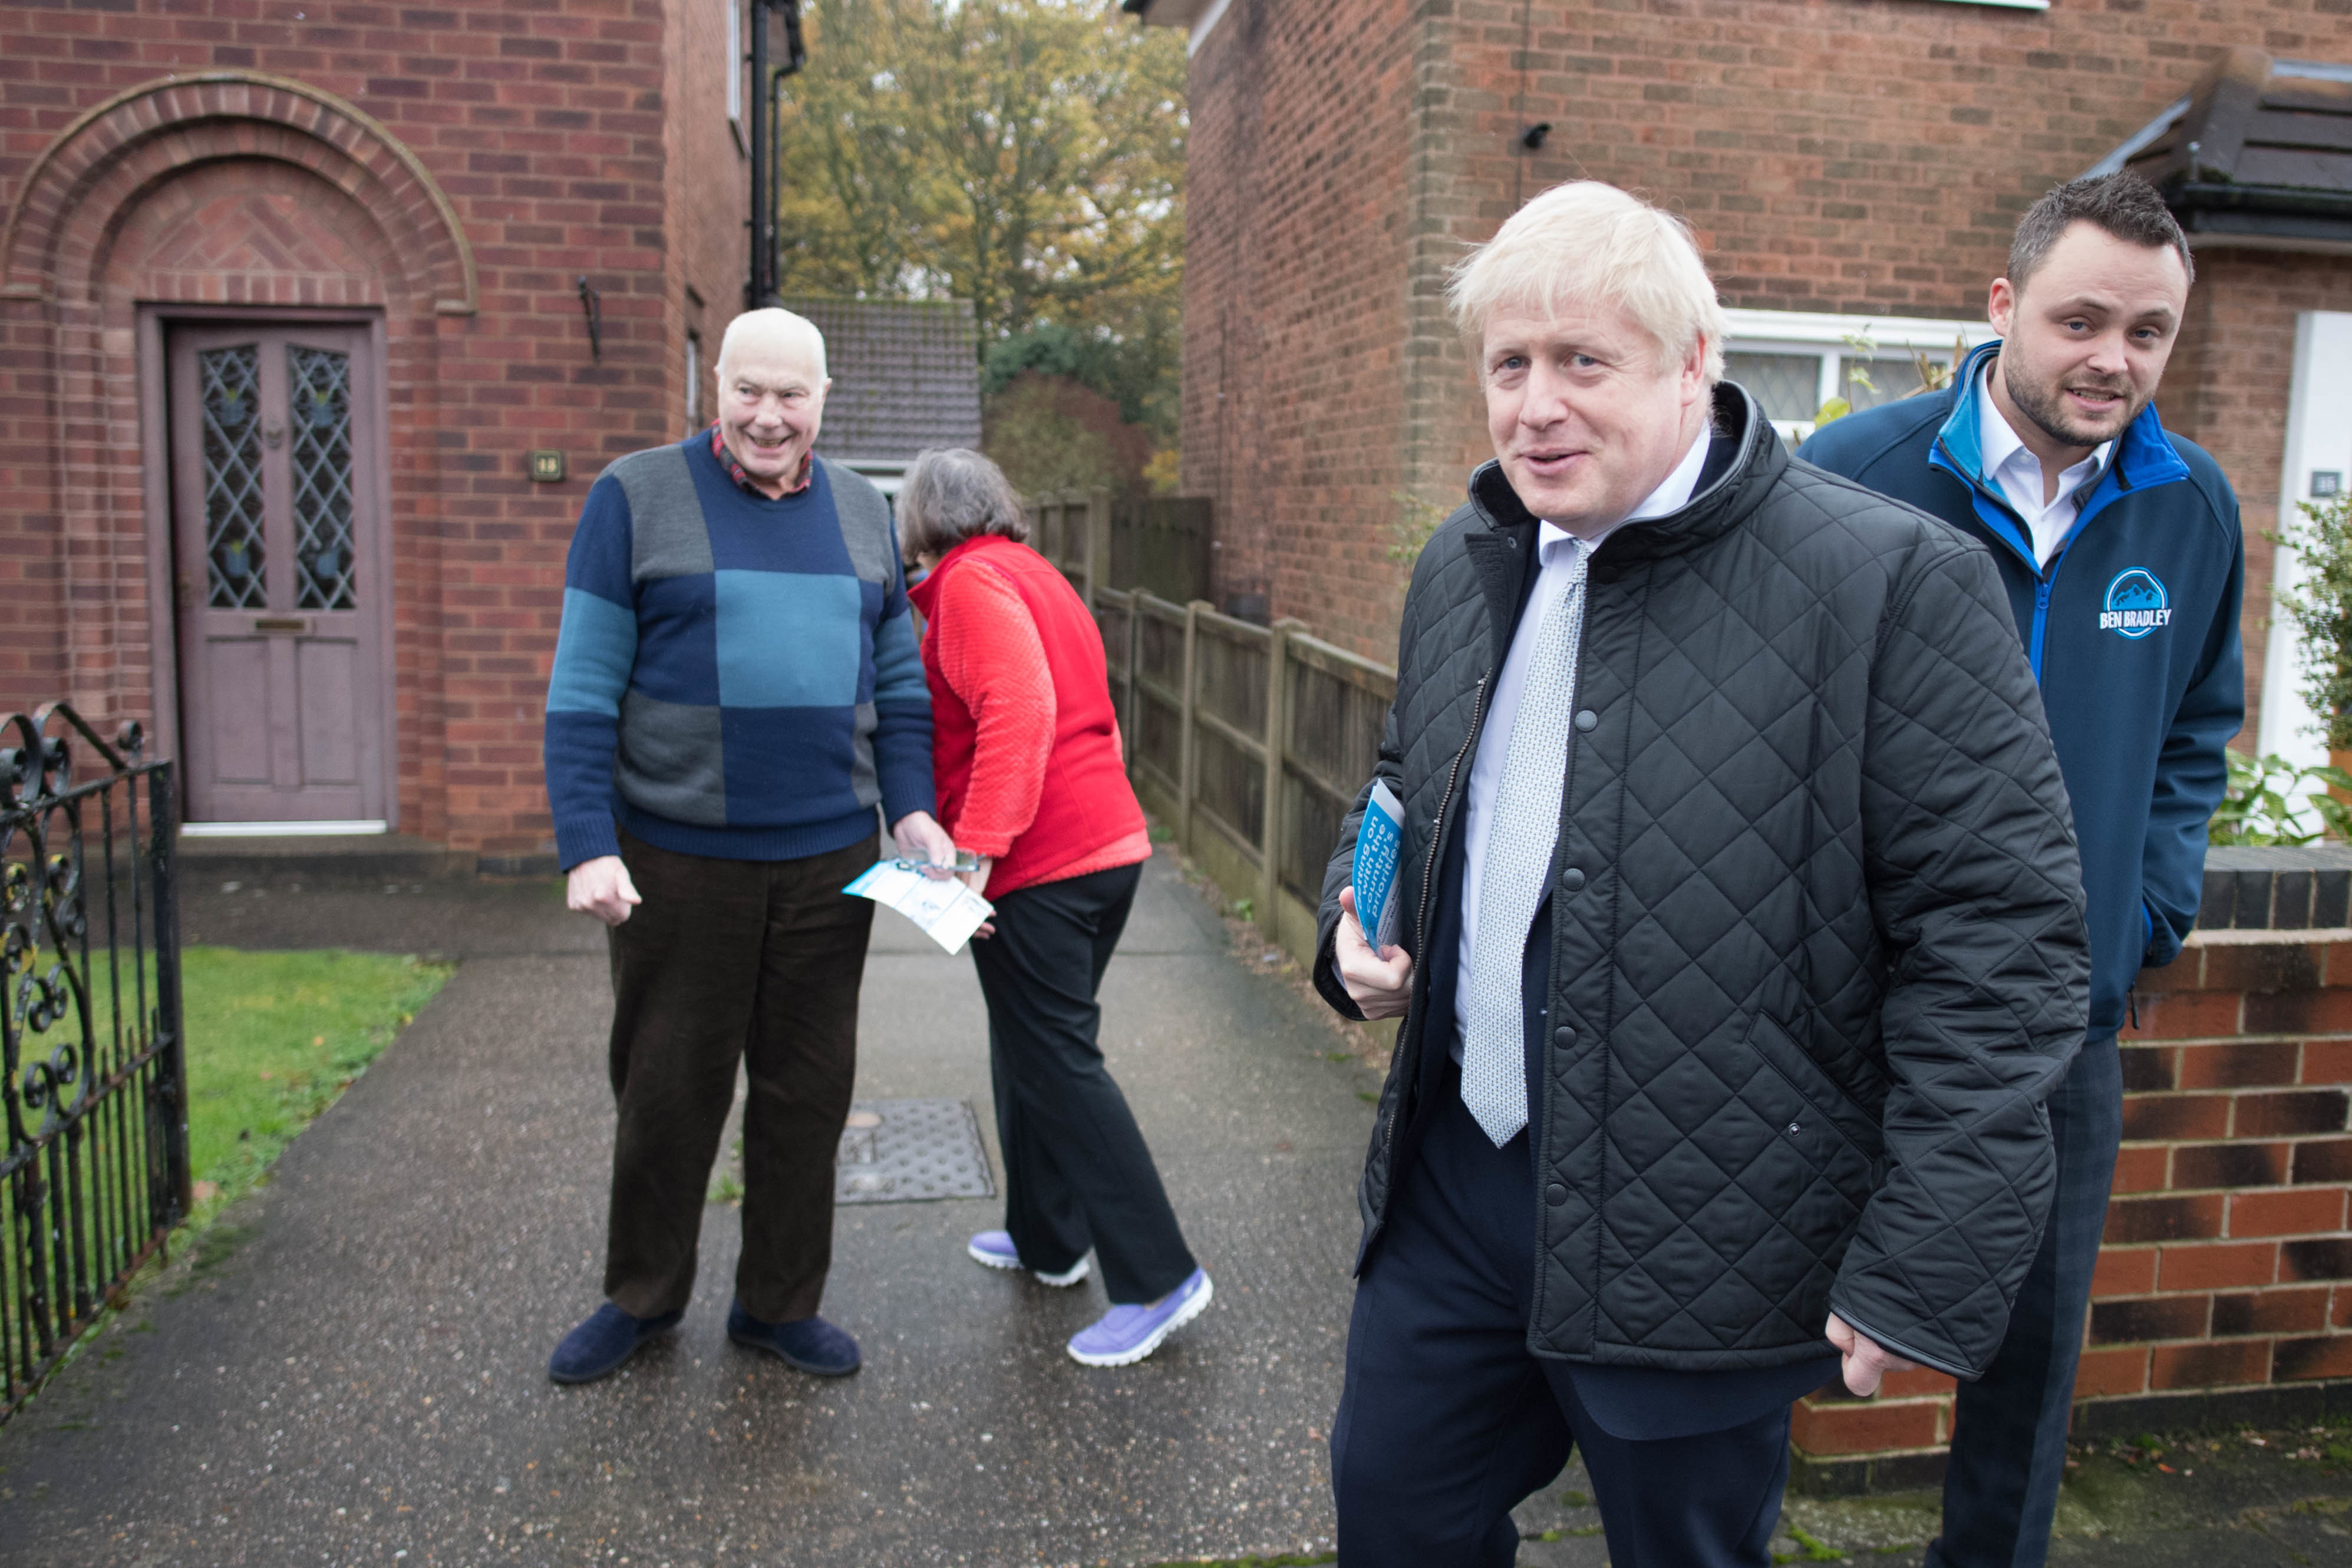 Prime Minister Boris Johnson door knocking in Mansfield, Nottinghamshire, whilst on the General Election campaign trail. PA Photo. Picture date: Saturday November 16, 2019. See PA story POLITICS Election. Photo credit should read: Stefan Rousseau/PA Wire